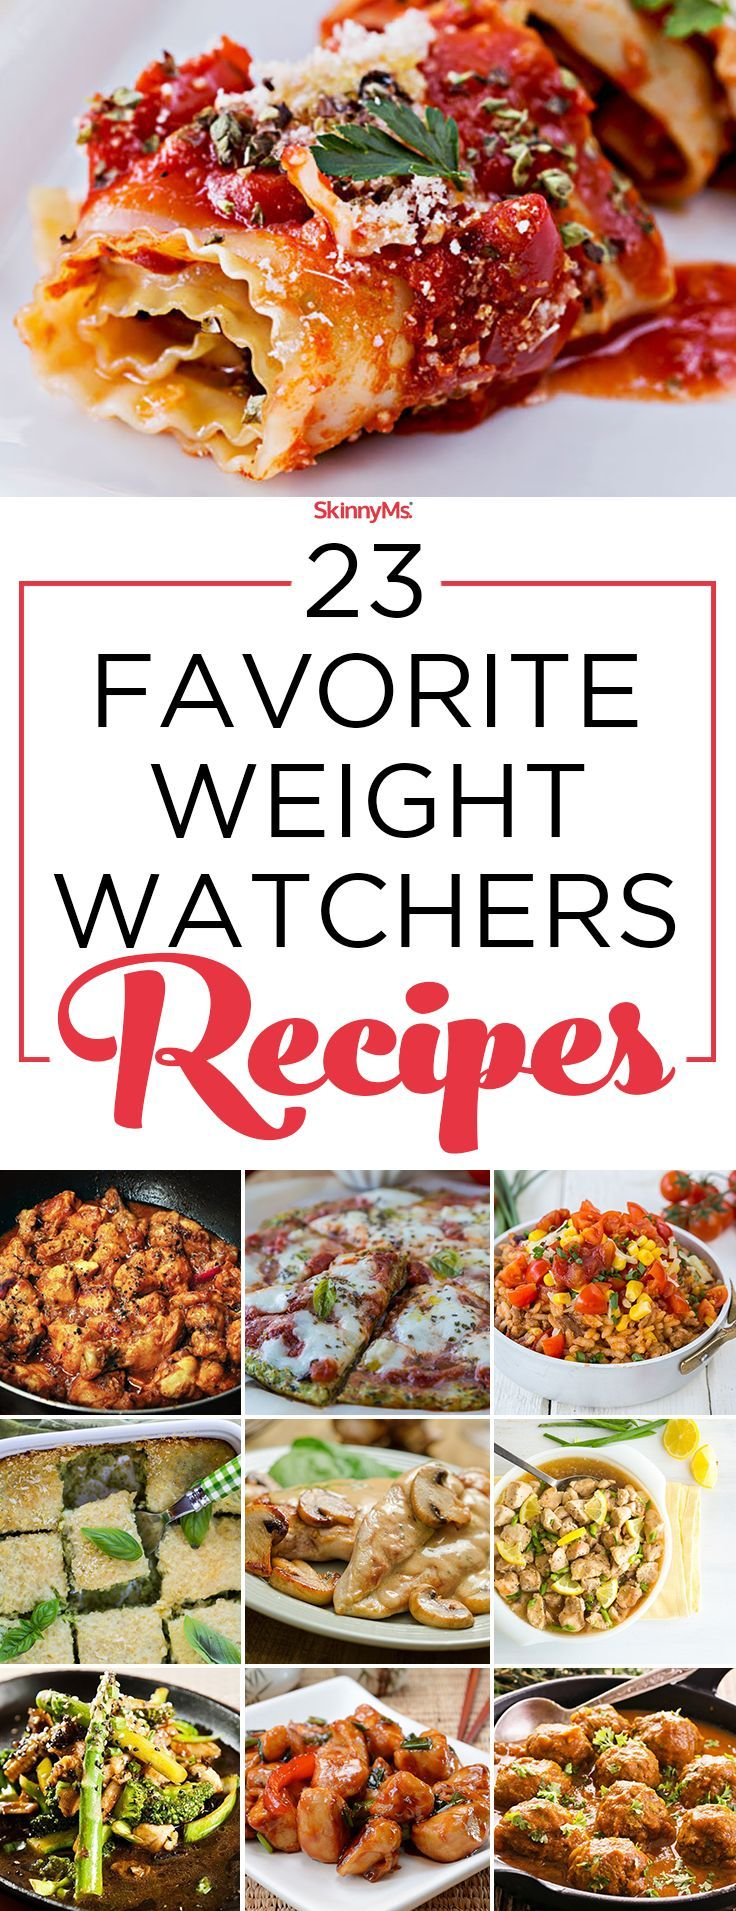 Love this  23 Favorite Weight Watchers Recipes!...